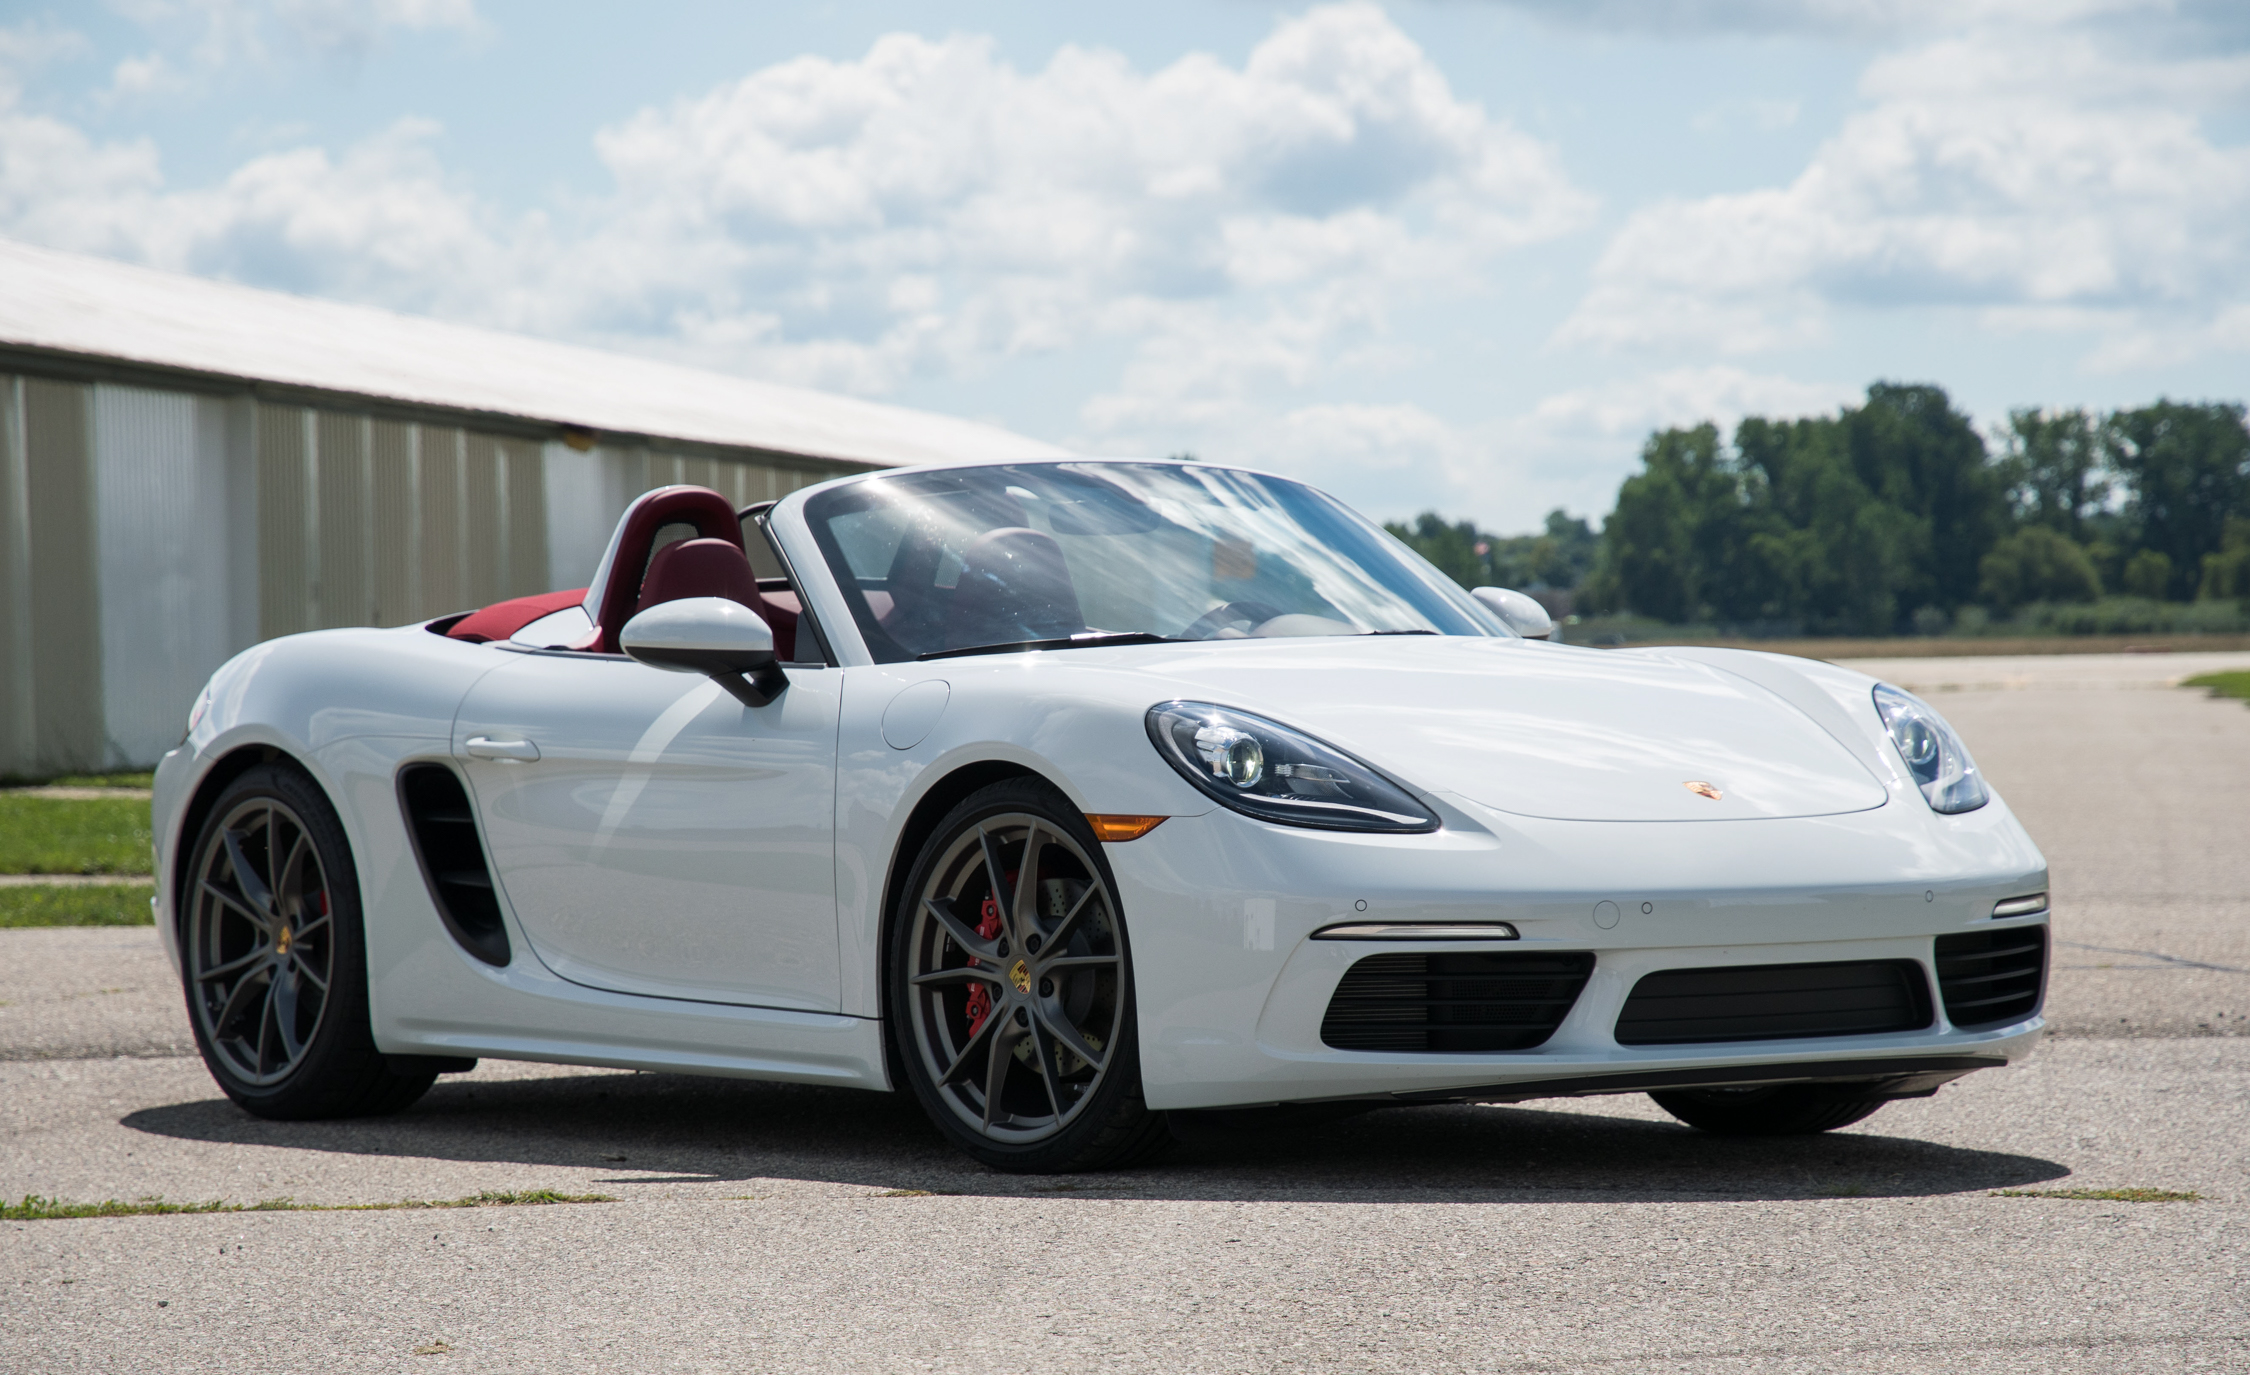 2017 Porsche 718 Boxster (View 49 of 71)